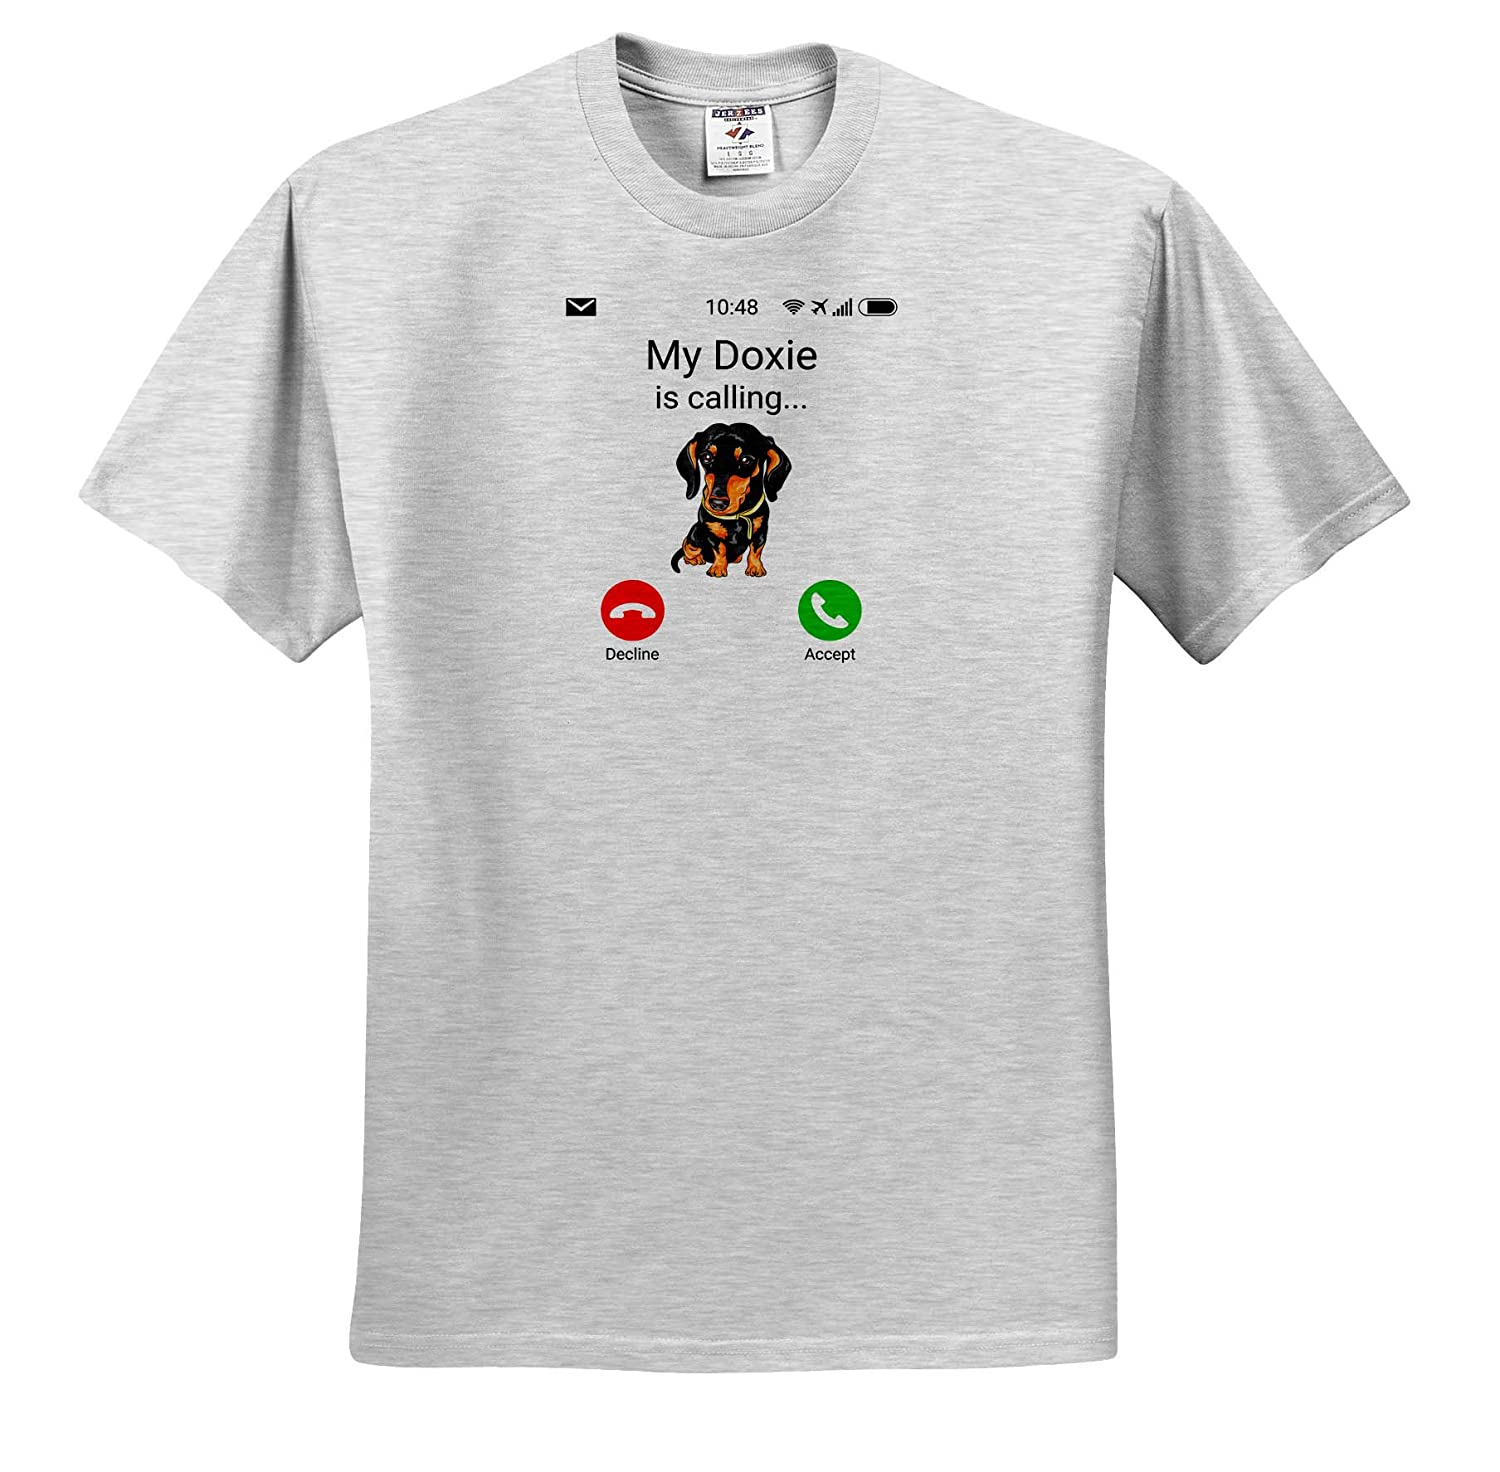 My Doxie is Calling Funny Incoming Phone Call Illustrations ts/_316052 3dRose Carsten Reisinger Adult T-Shirt XL